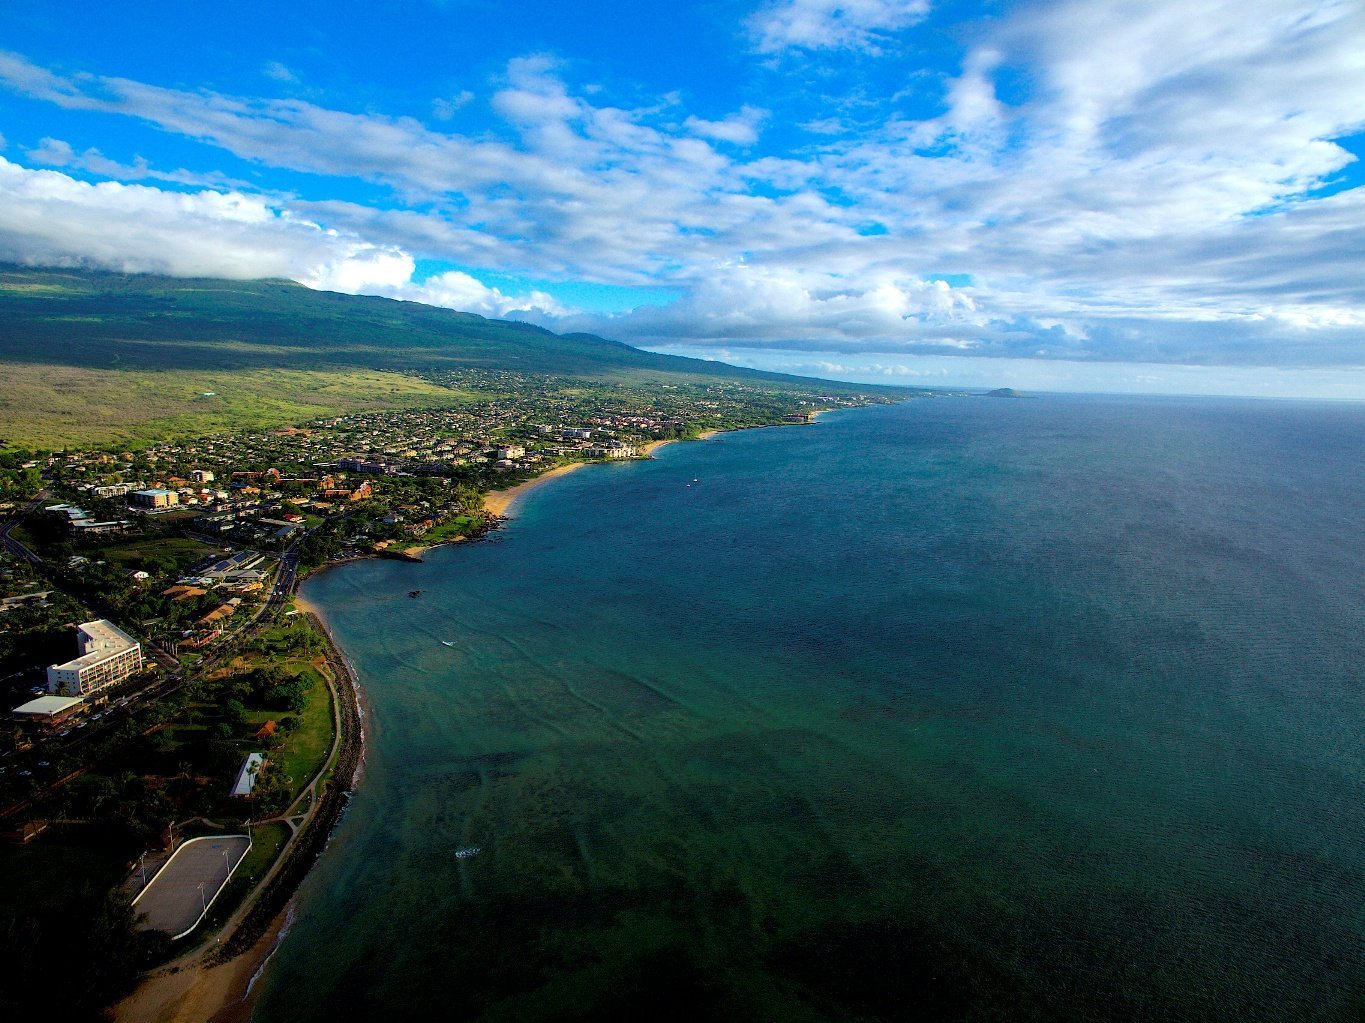 https://0201.nccdn.net/1_2/000/000/0f6/6b6/Kihei--Wailea-and-Makena-in-Maui-1365x1023.jpg